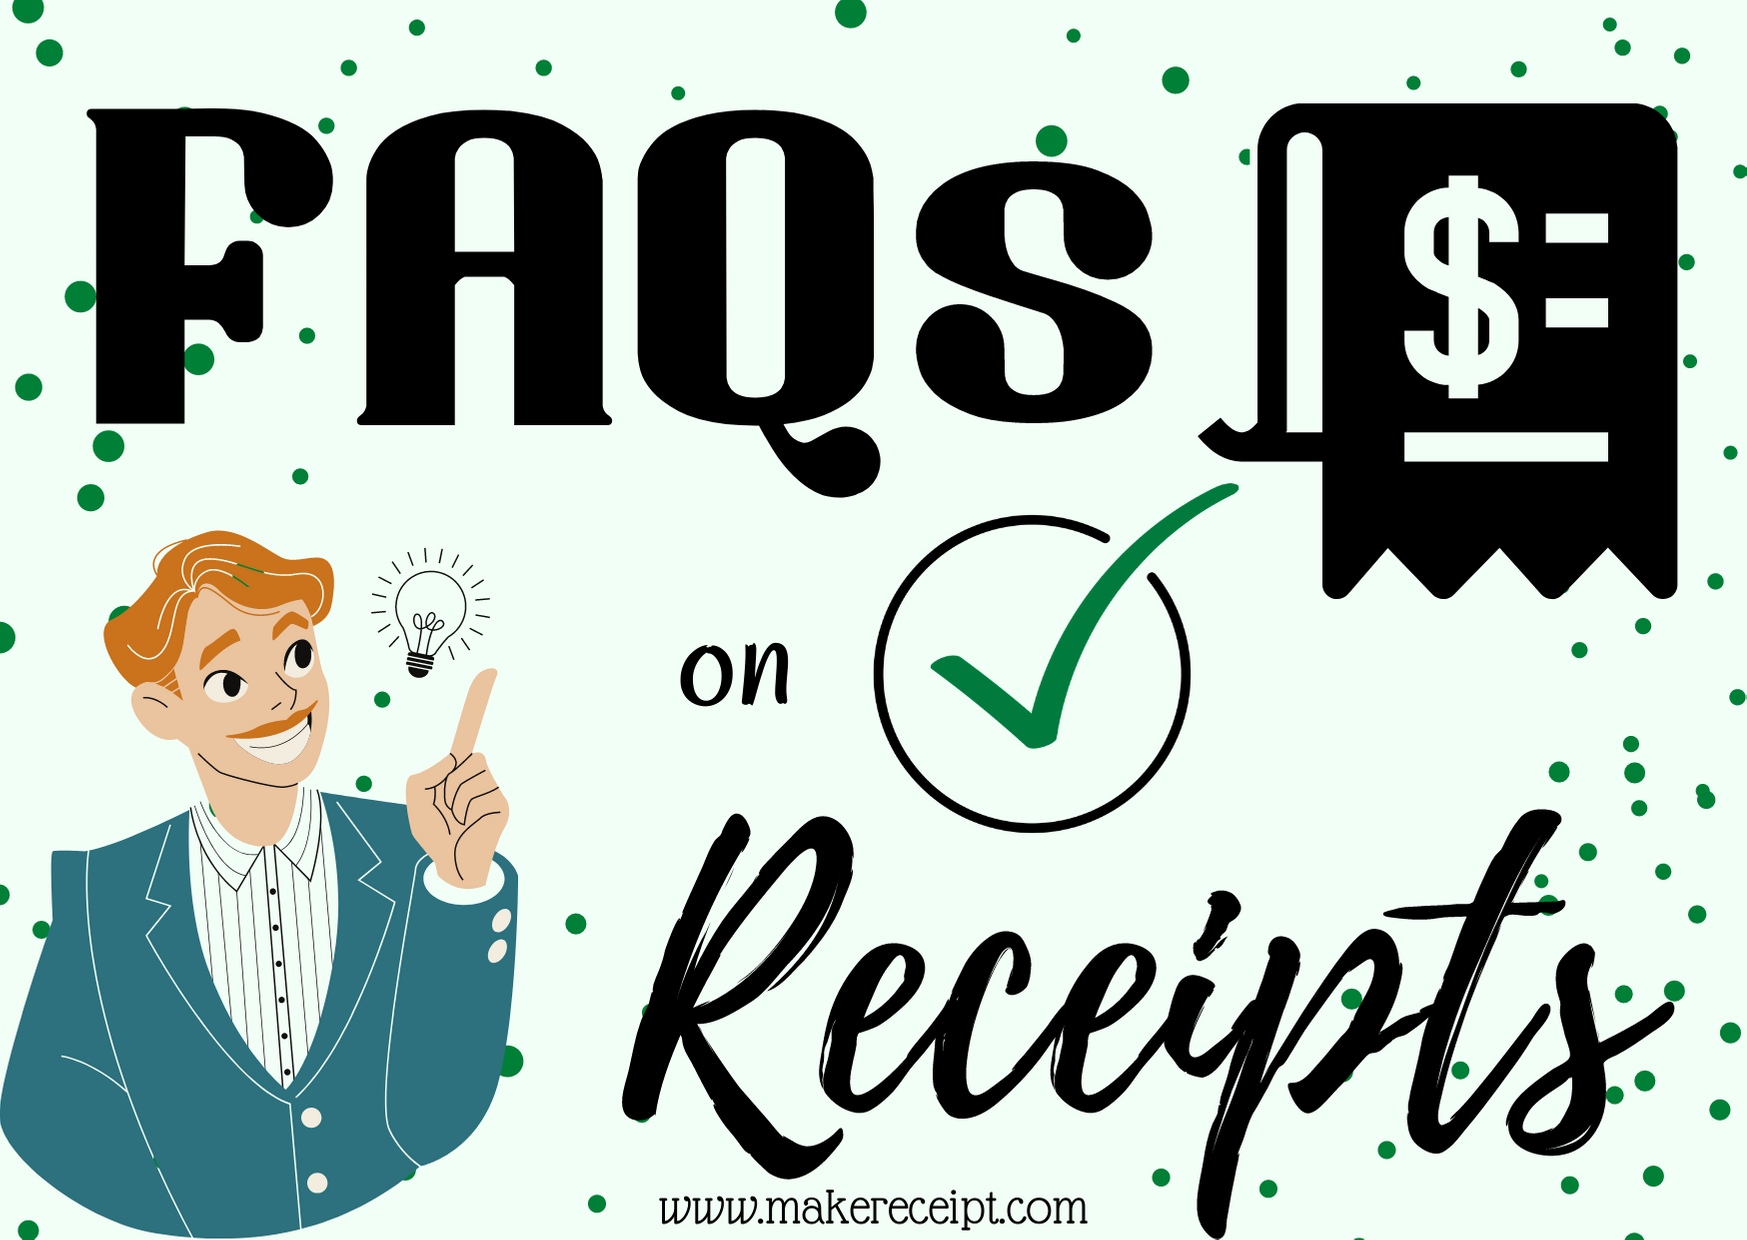 Frequently Asked Questions on Receipts